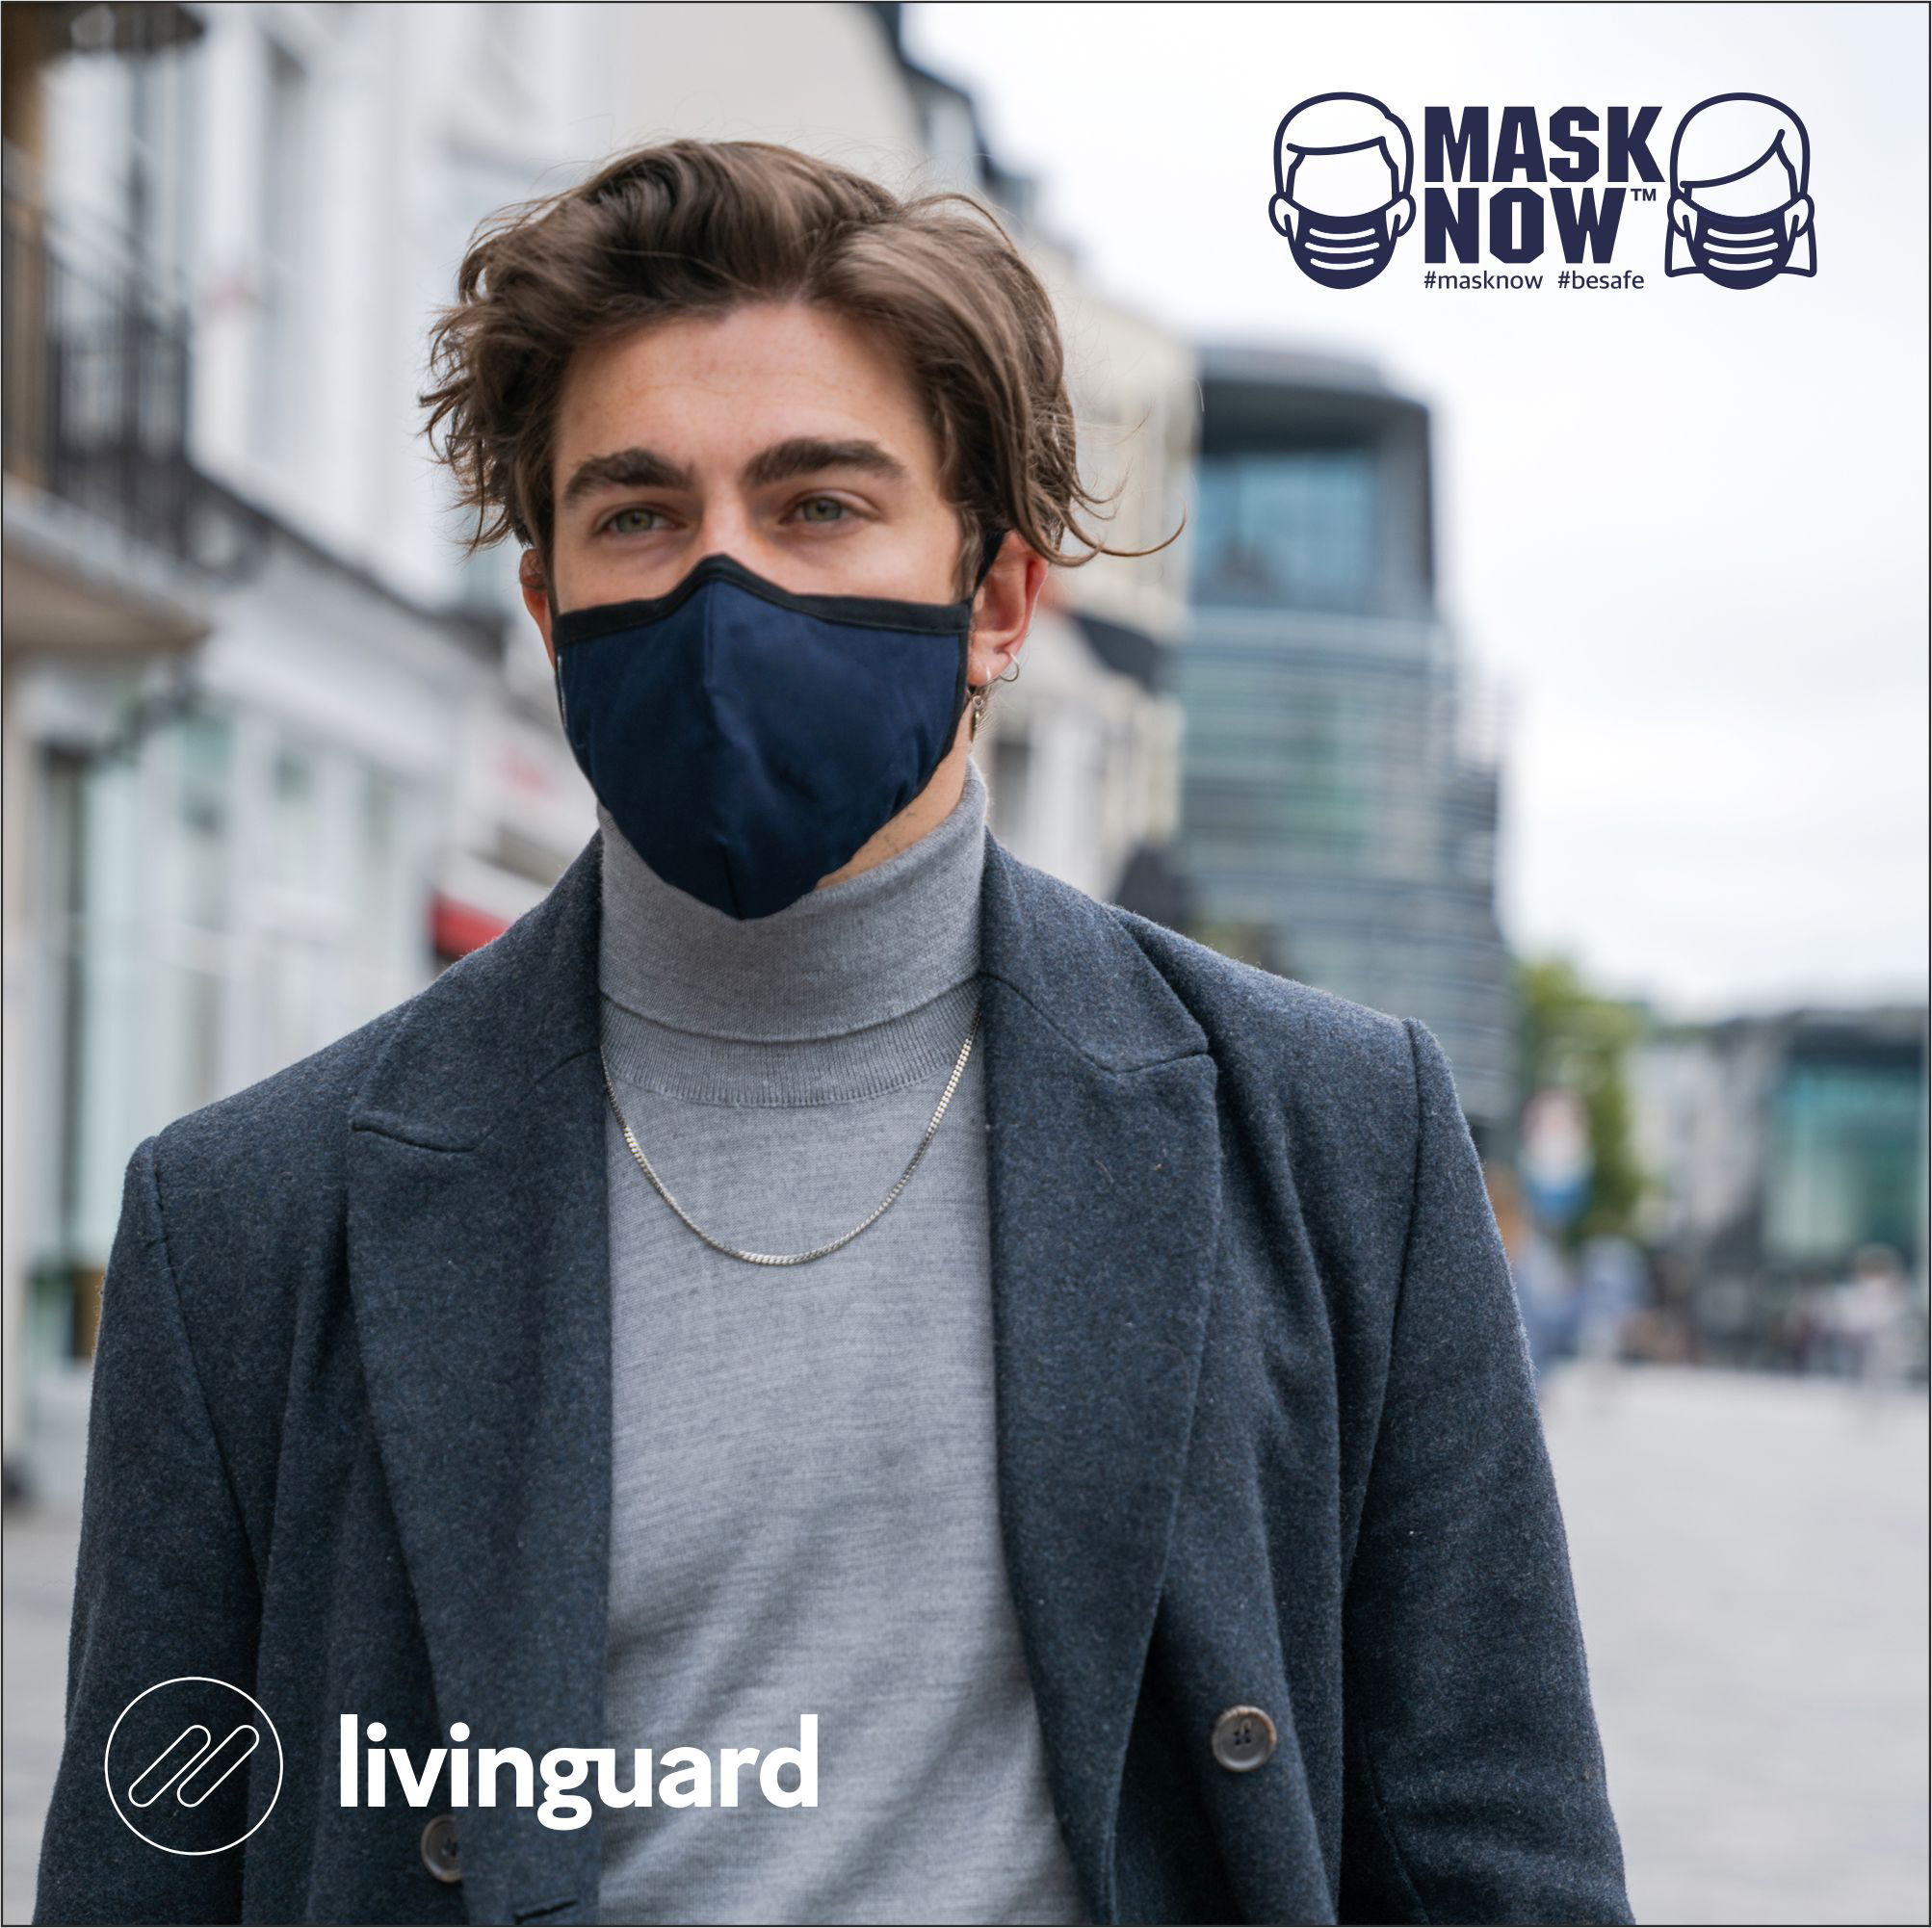 MaskNow.Co.uk brings revolutionary Livinguard face masks to UK